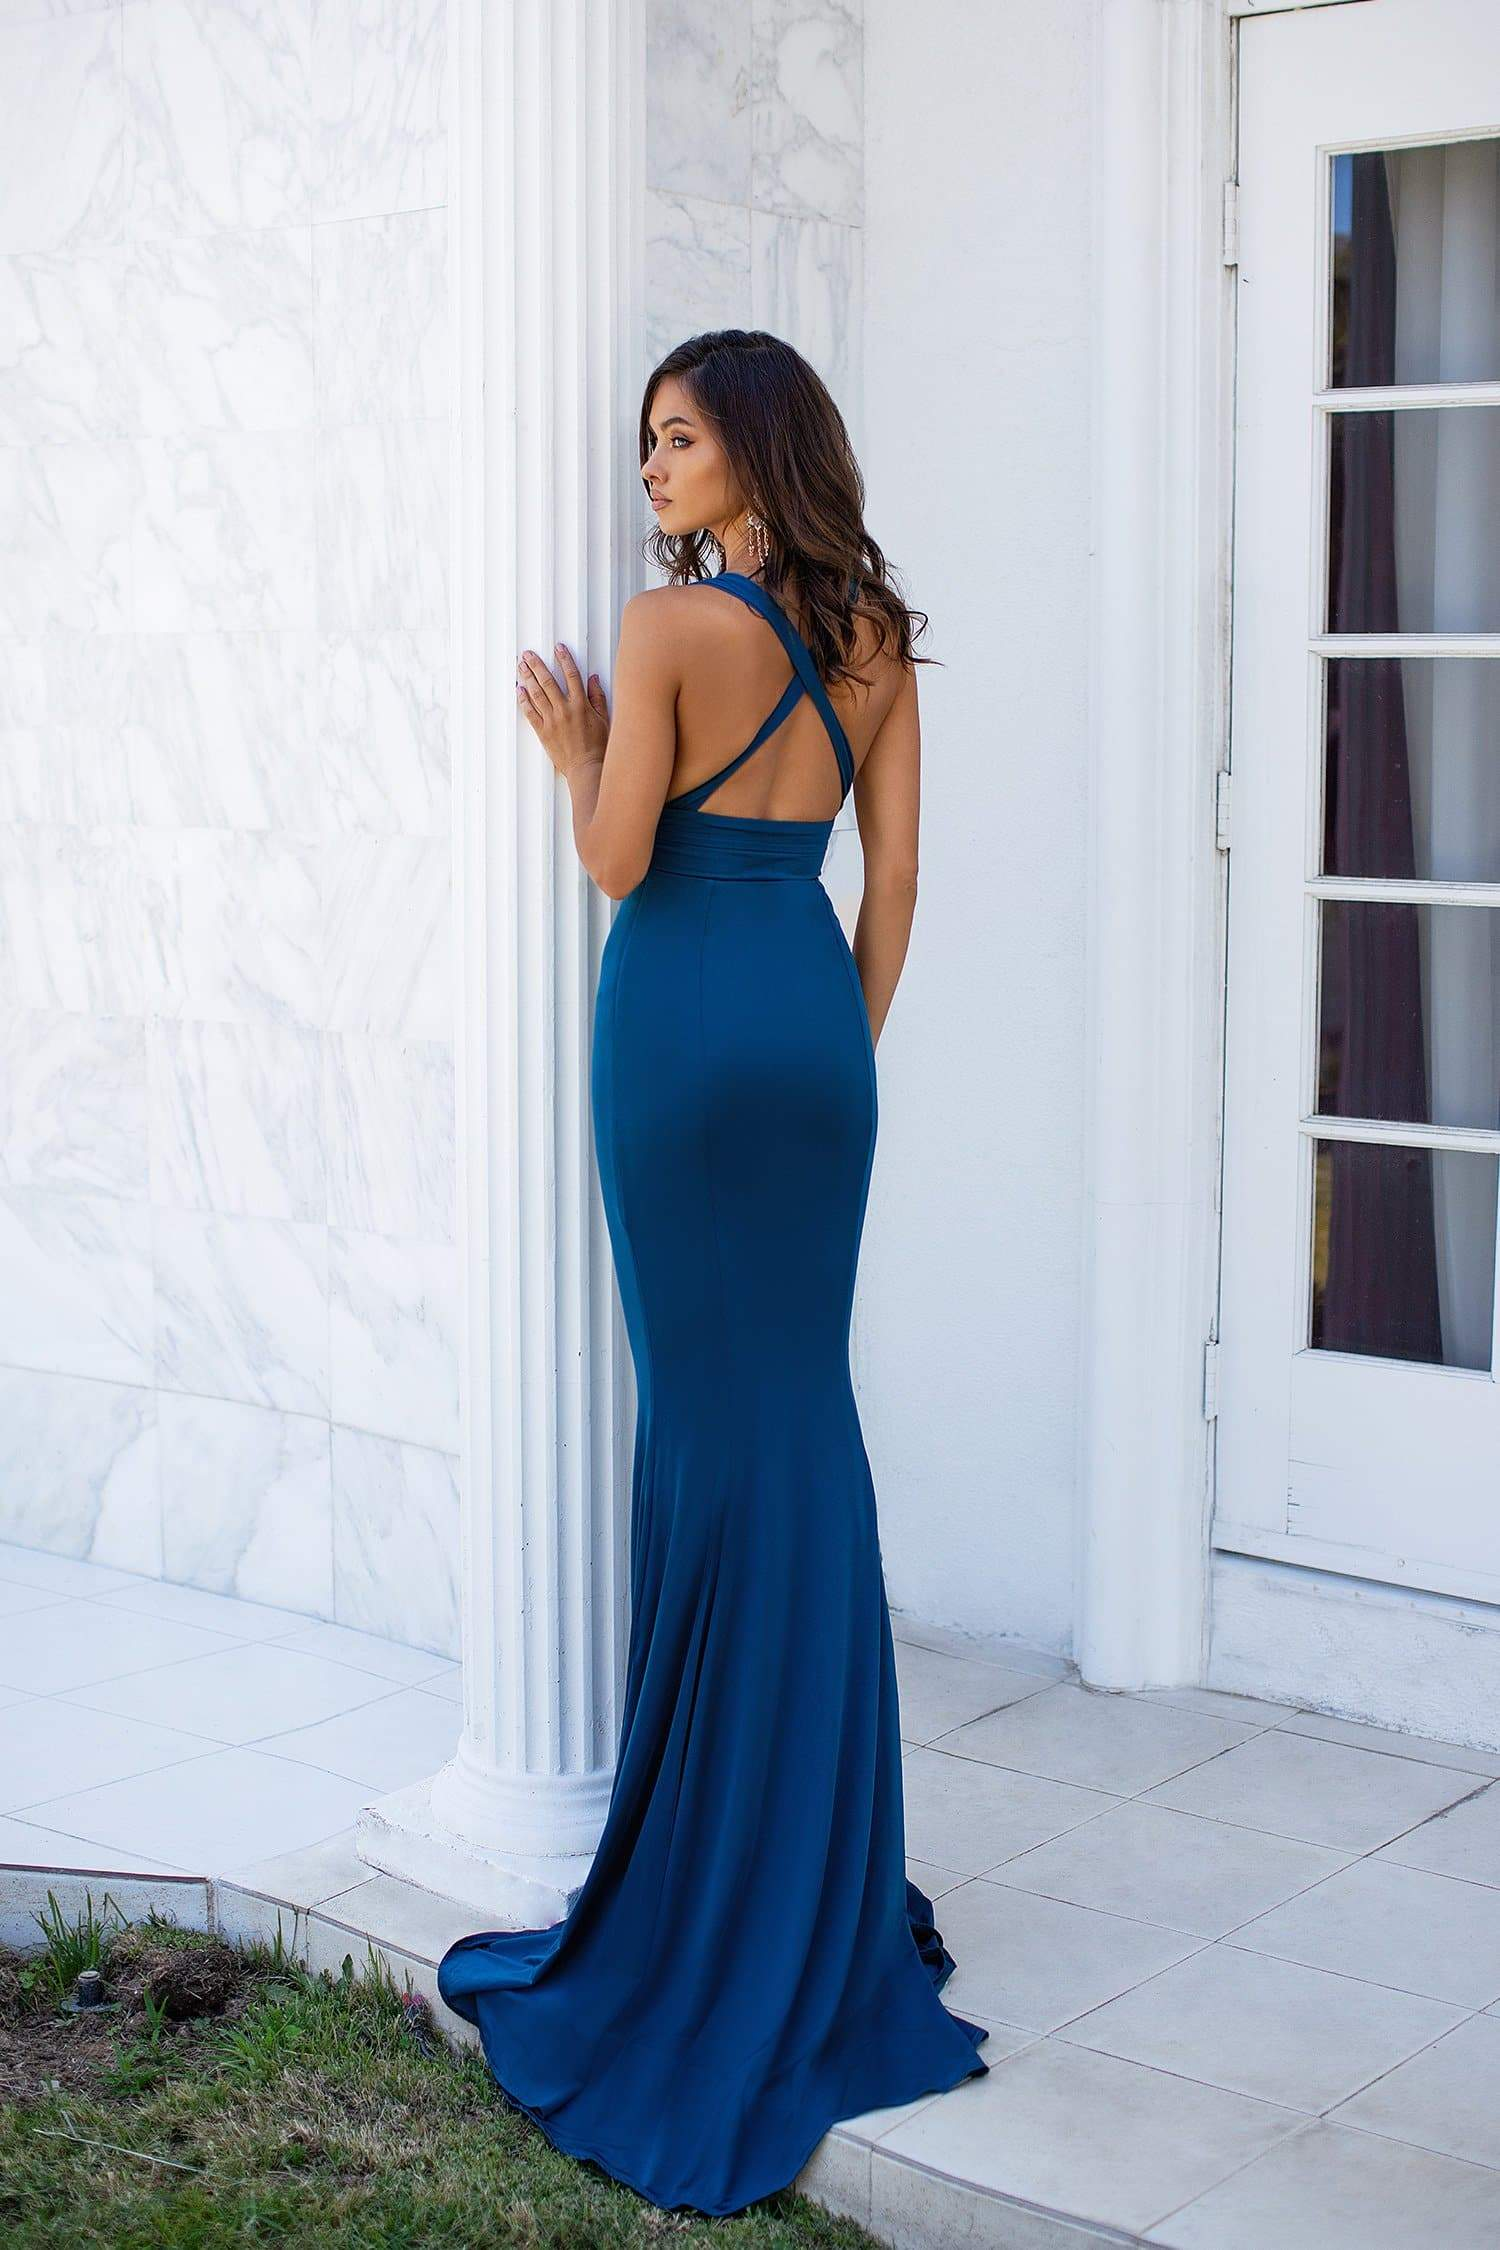 Naomi - Teal Mermaid Gown with Plunge Neckline & Criss Cross Back